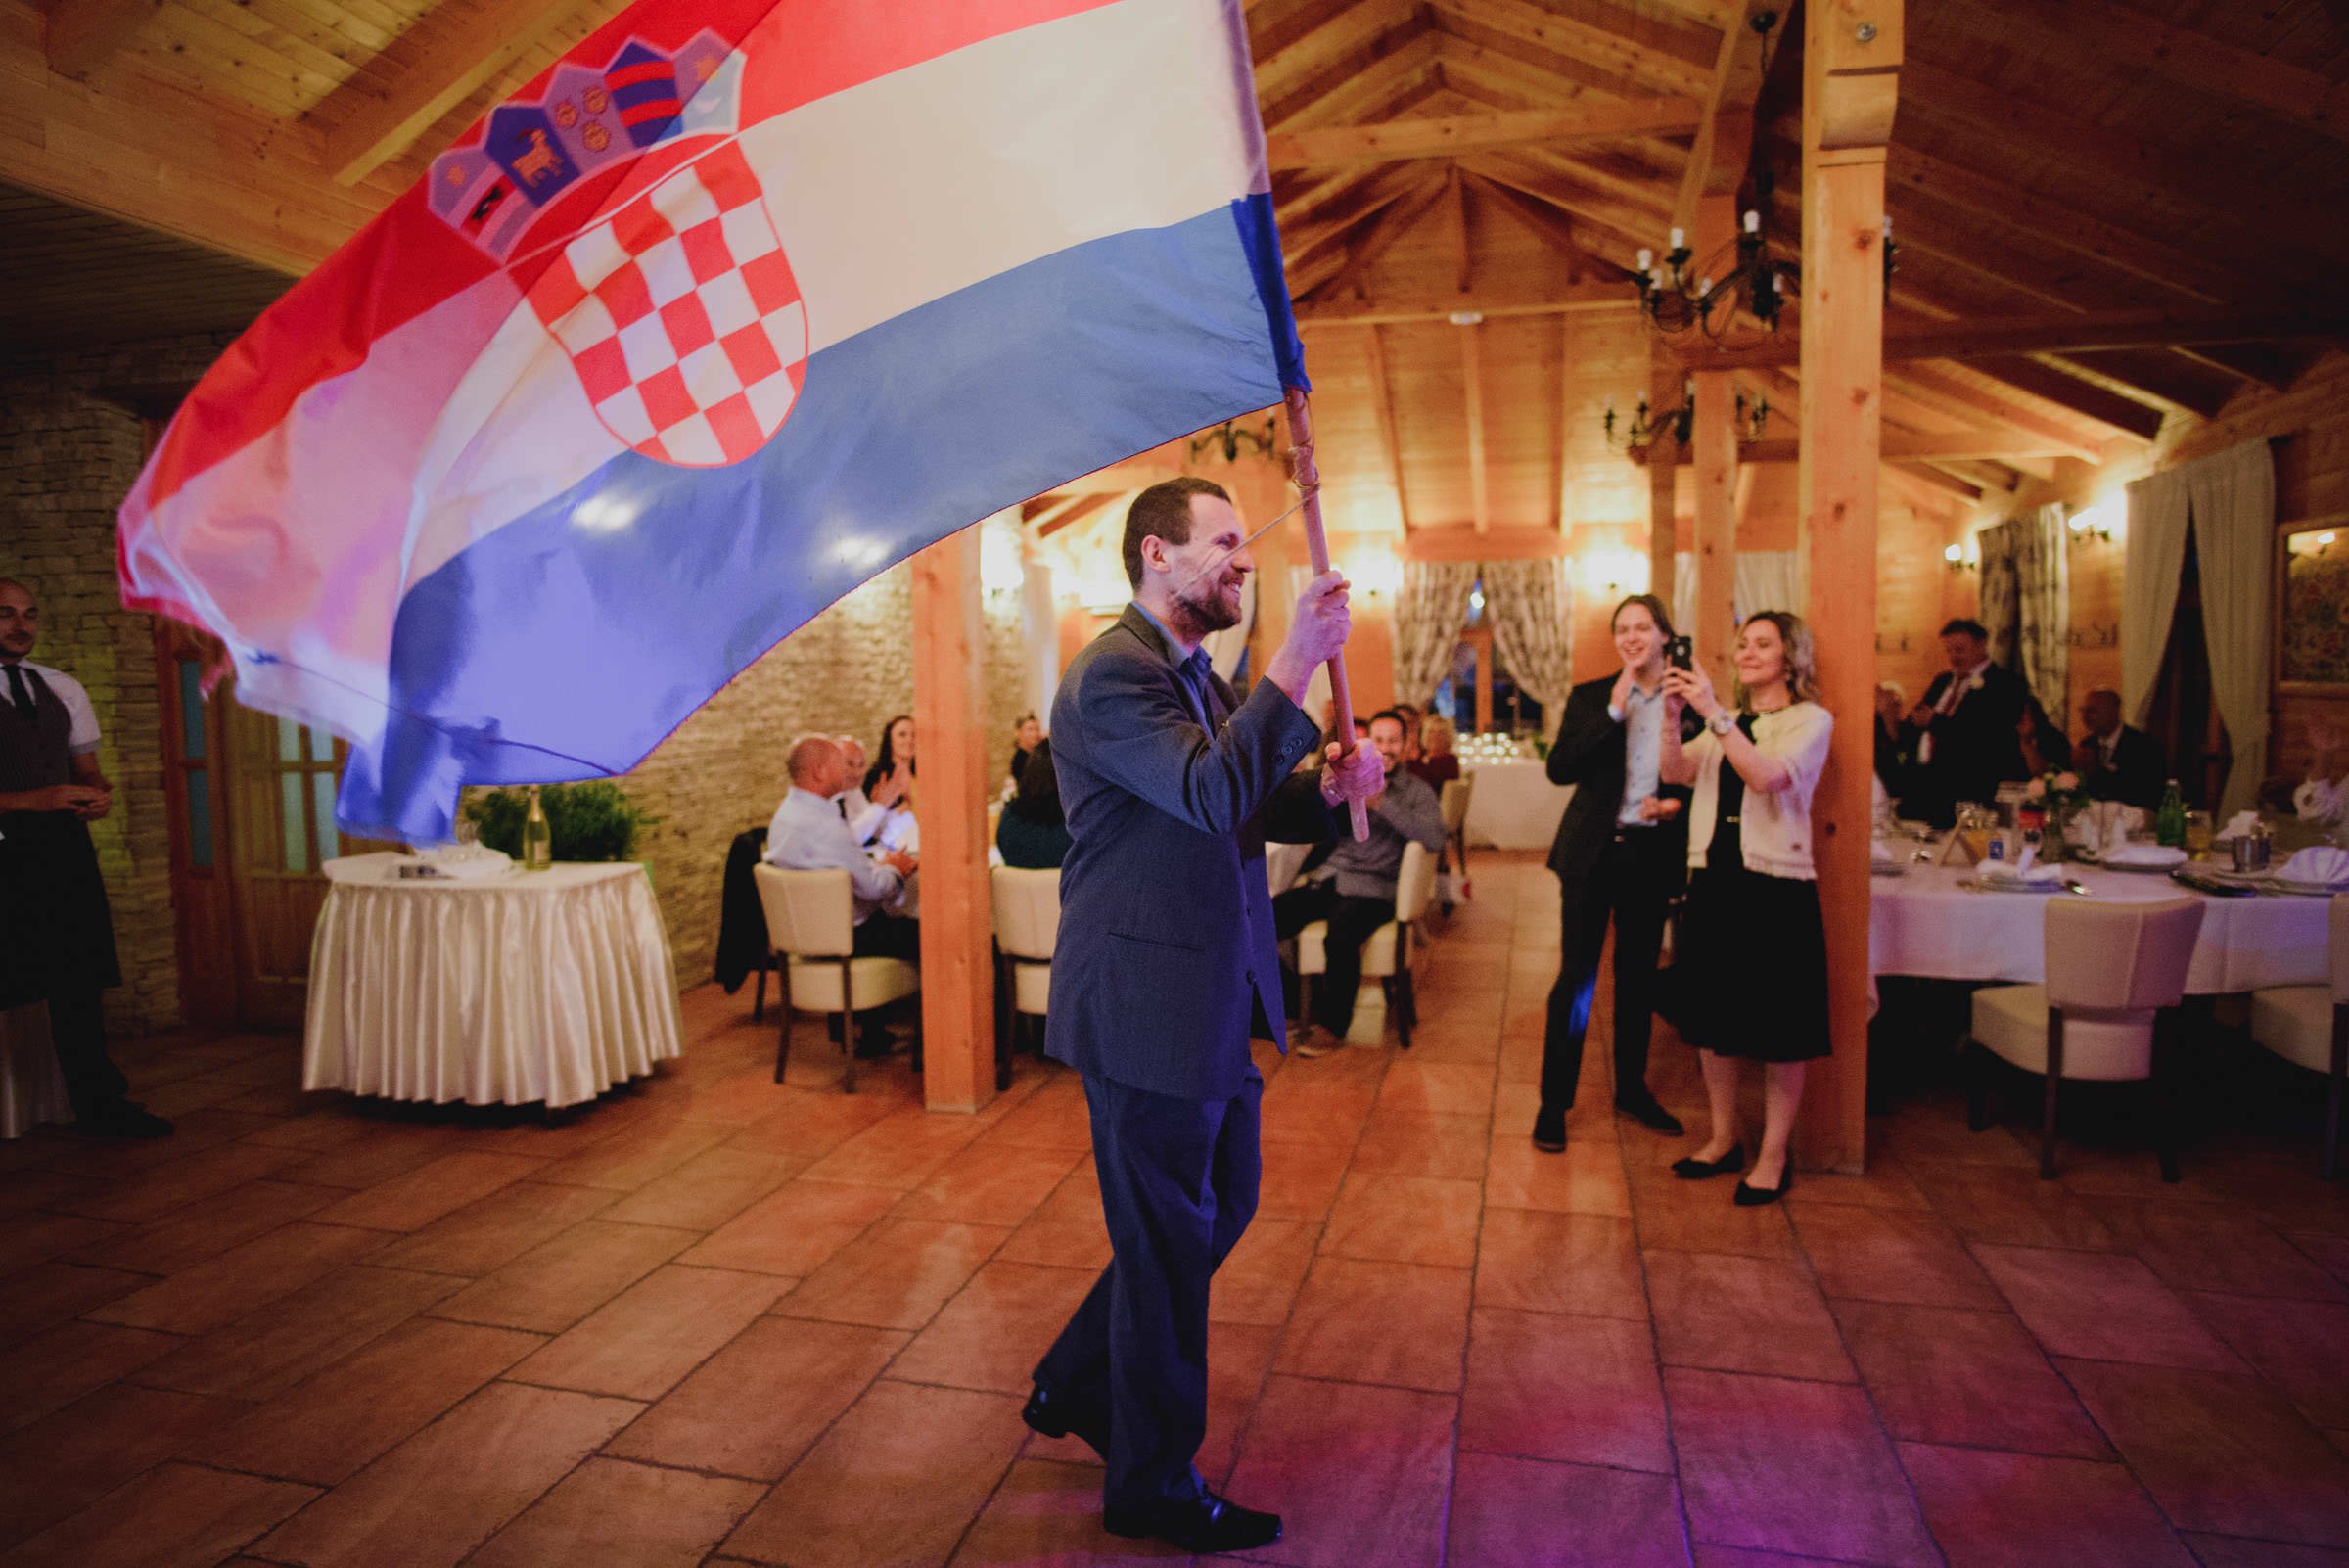 standard-bearer entering the restaurant with a flag